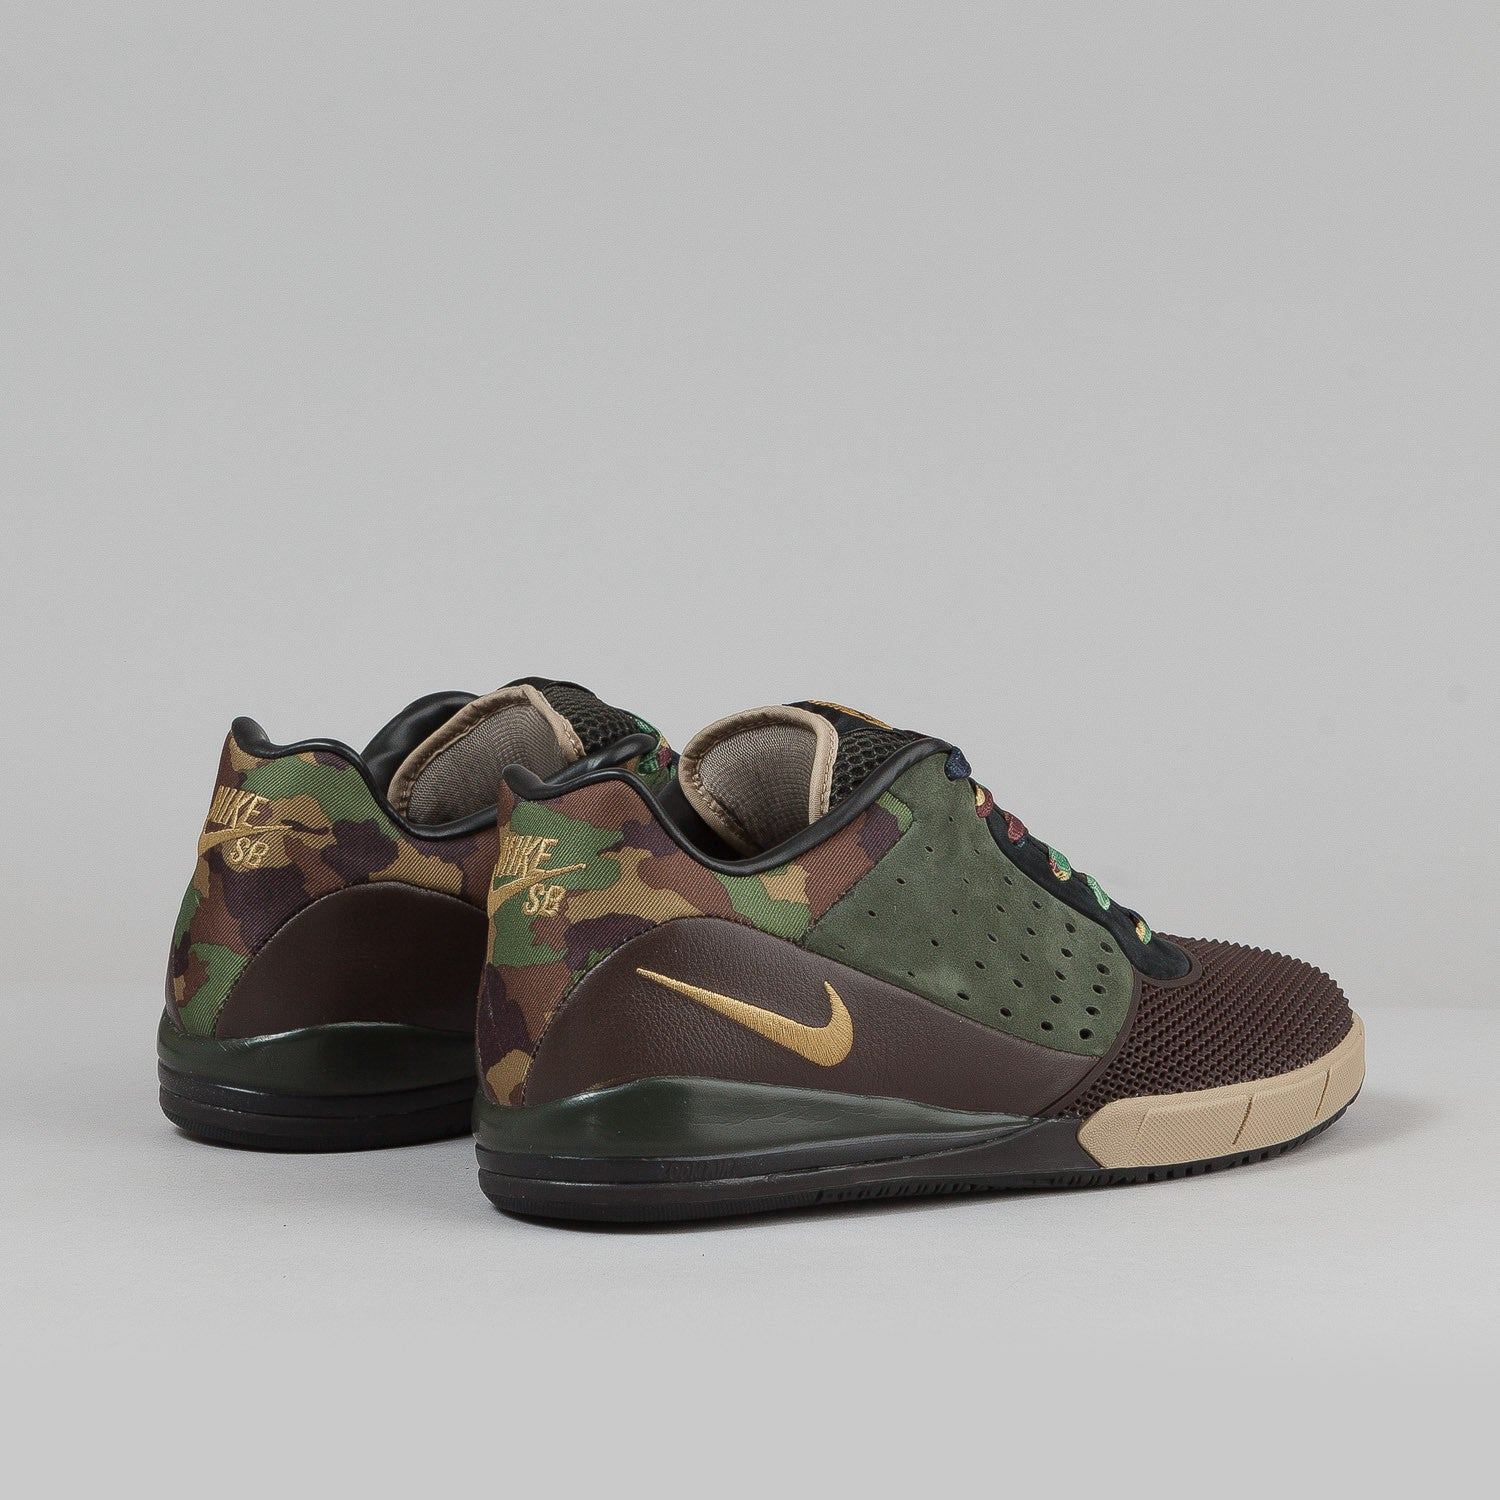 Nike SB Zoom Tre A.D. Shoes - Dark Cinder / Metallic Gold